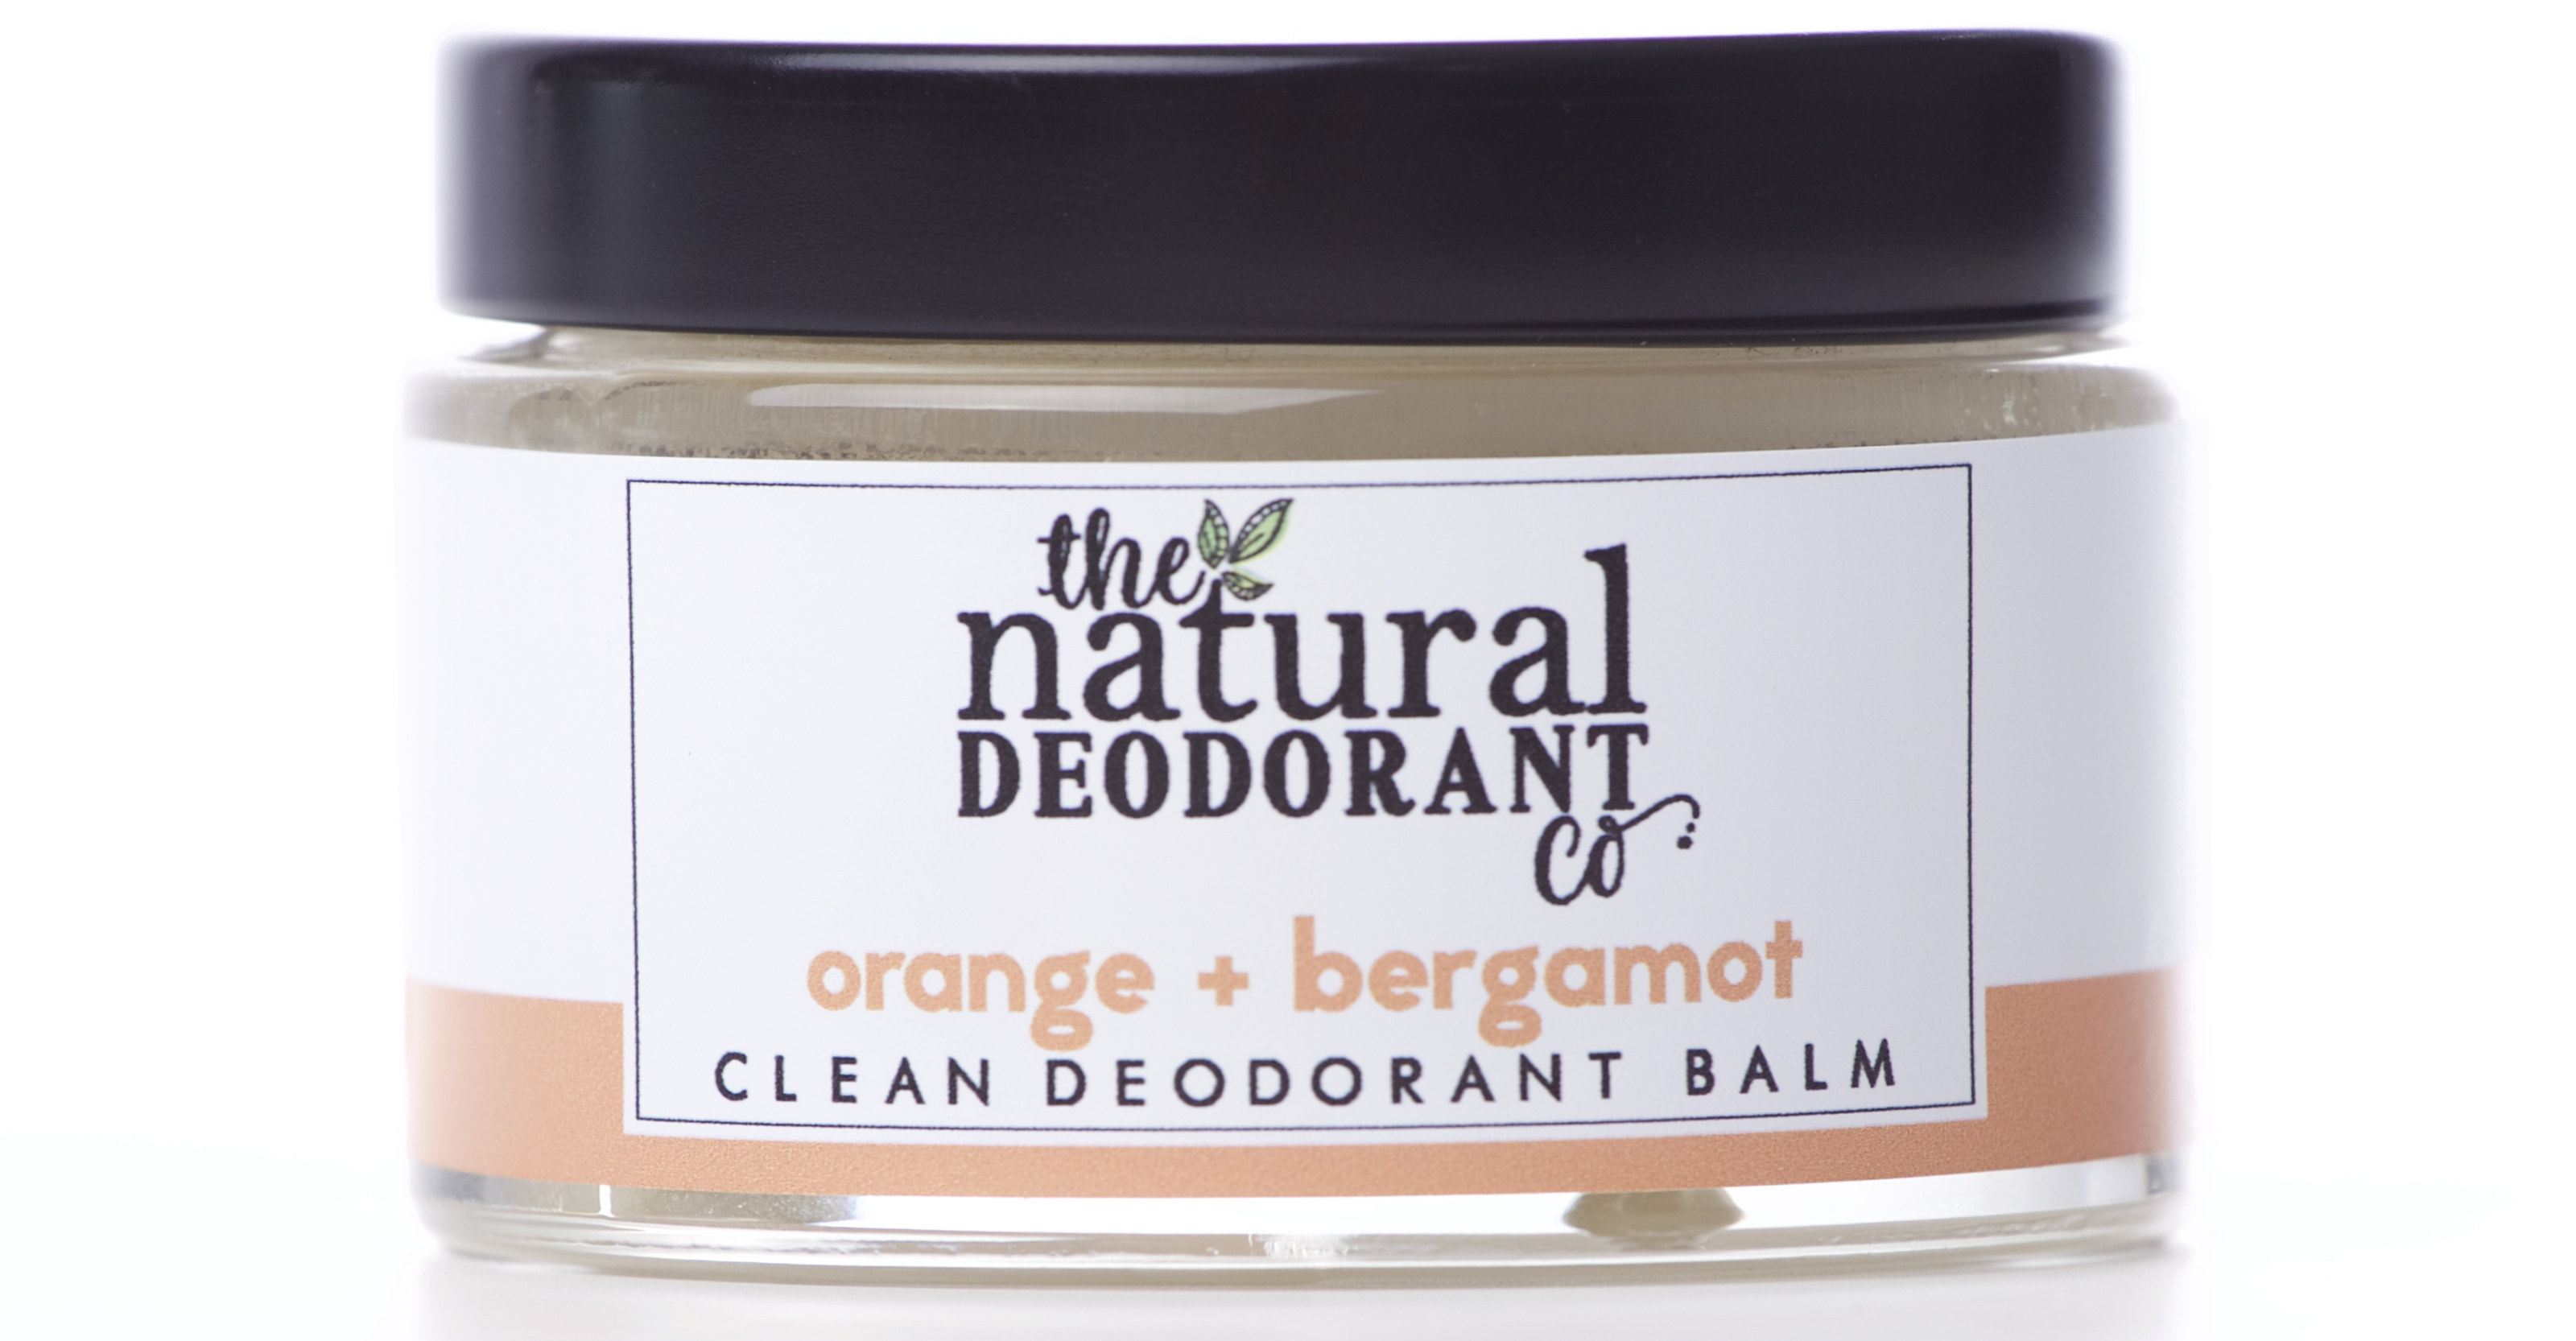 Natural Deo Co Clean Deodorant Balm Orange and Bergamot